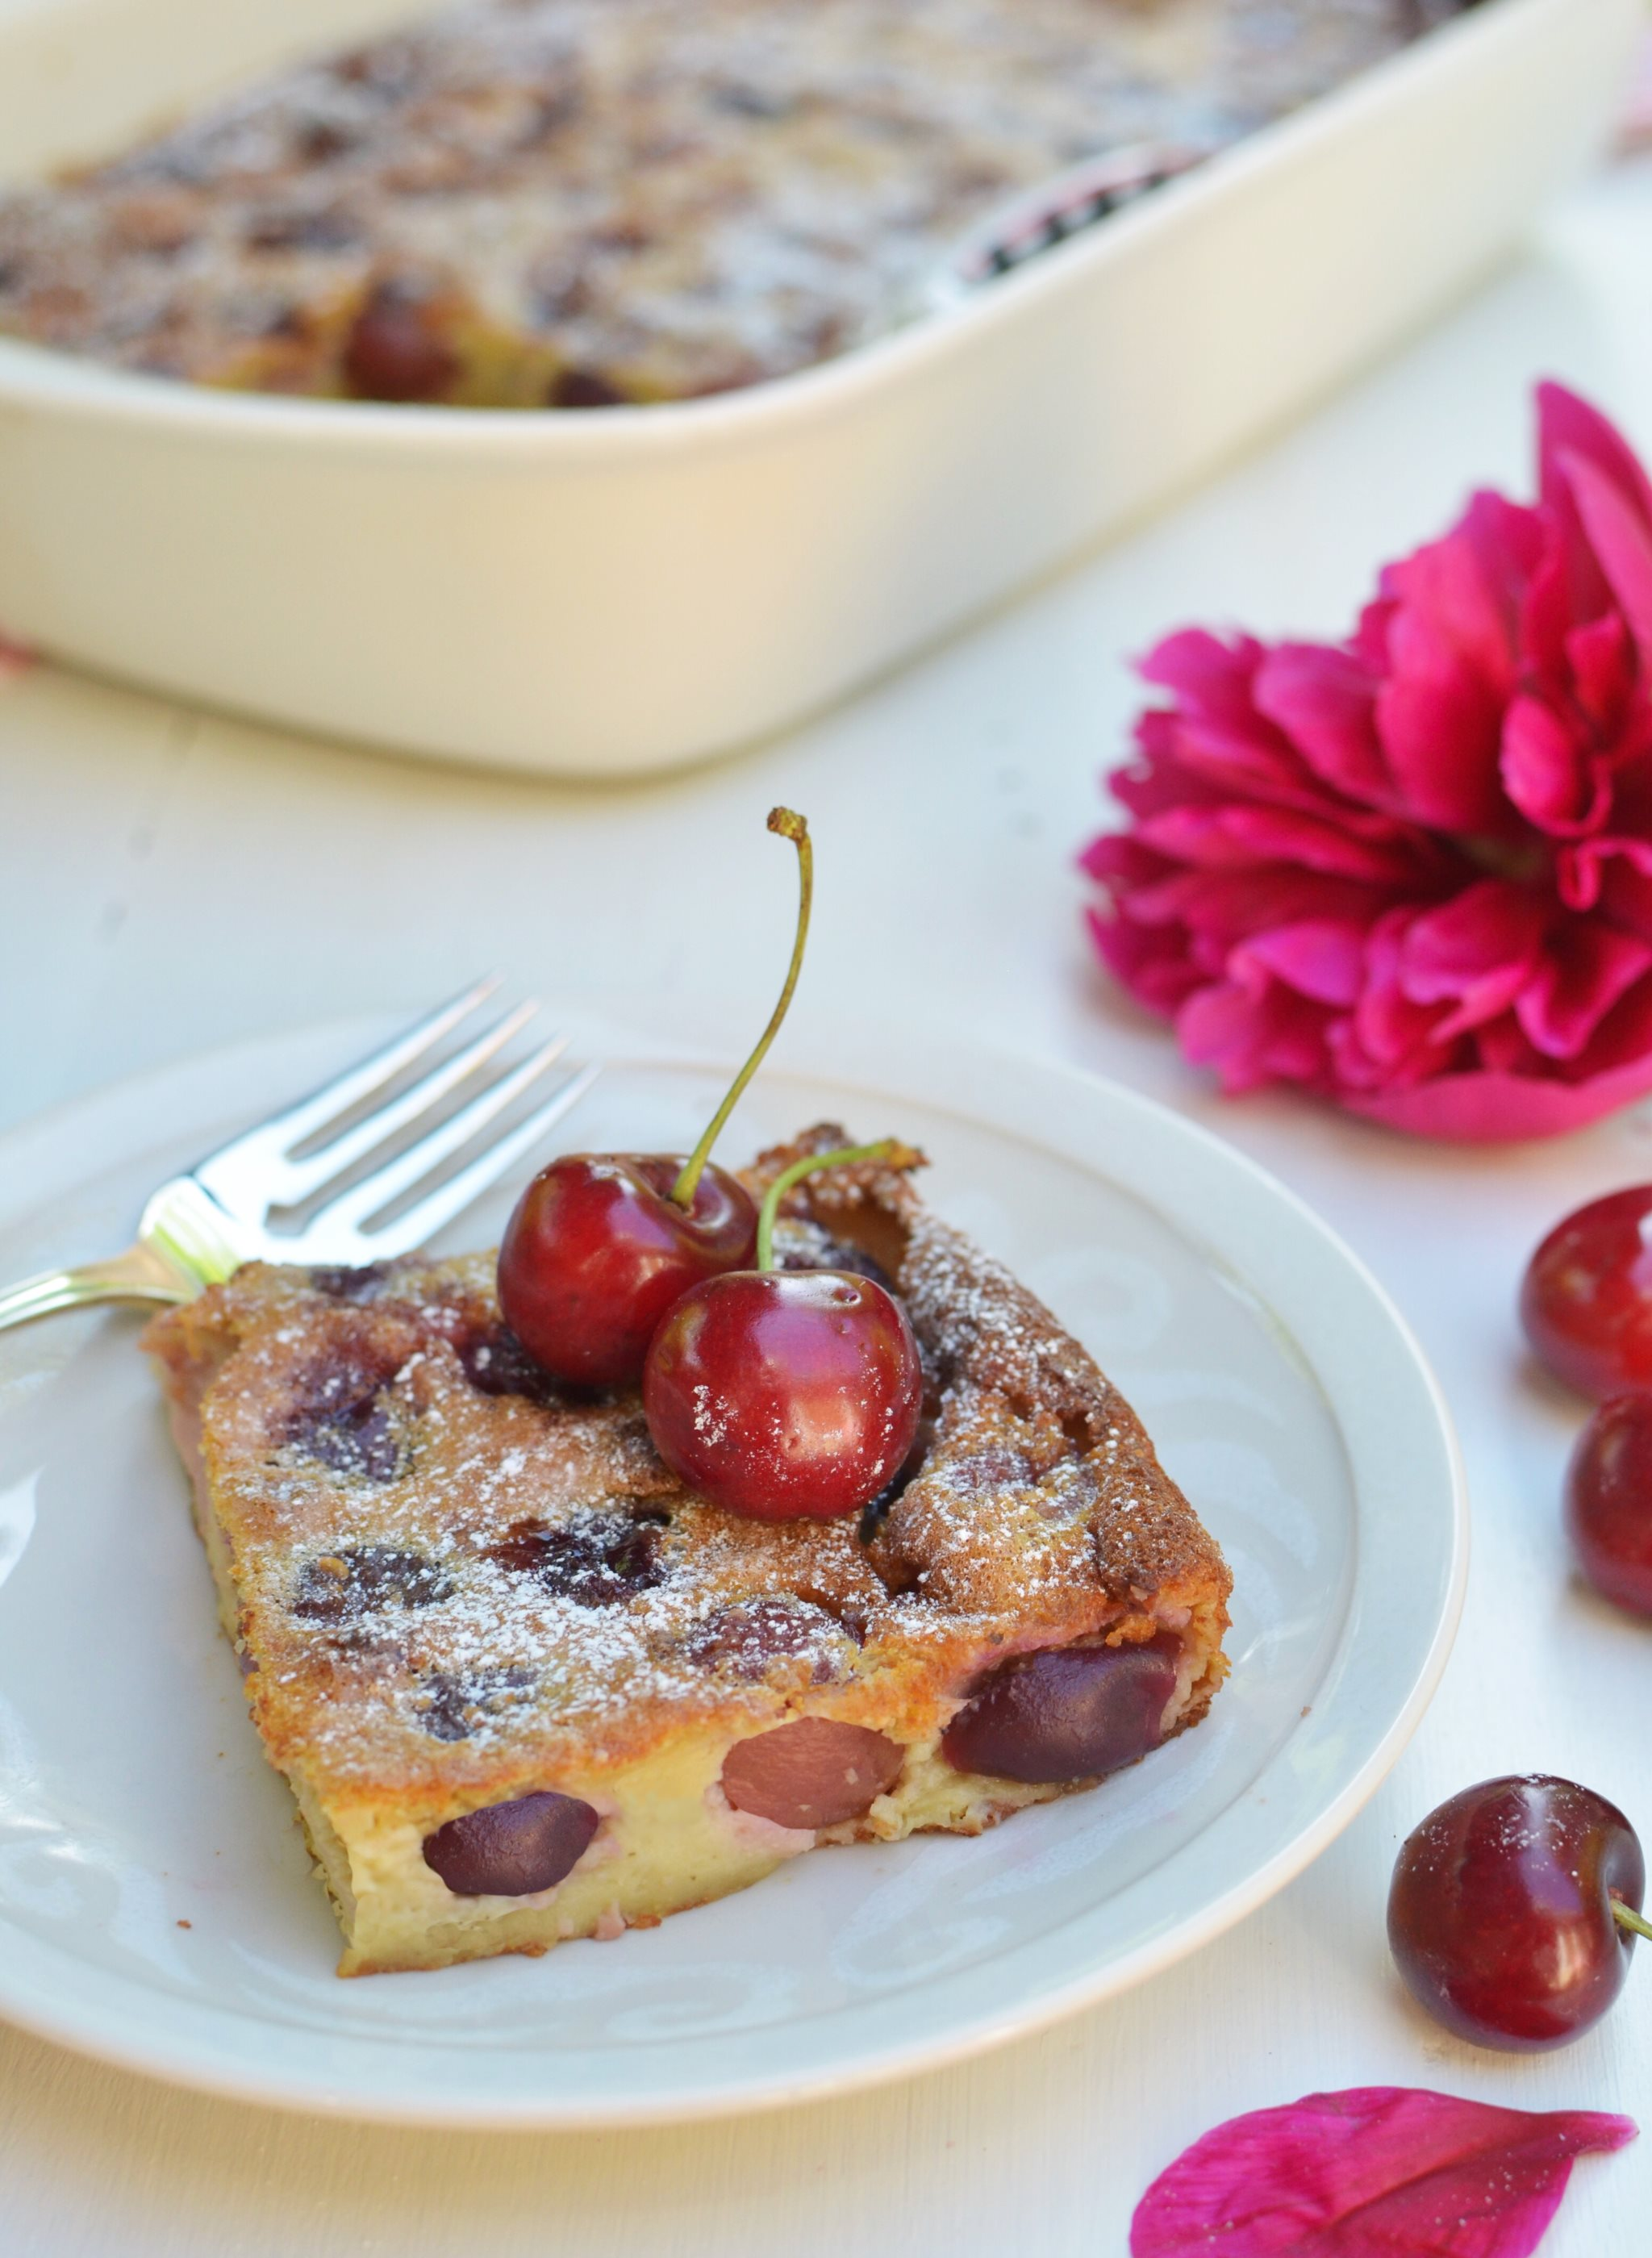 French Cherry Clafoutis Gluten free and How to pit cherries with a straw